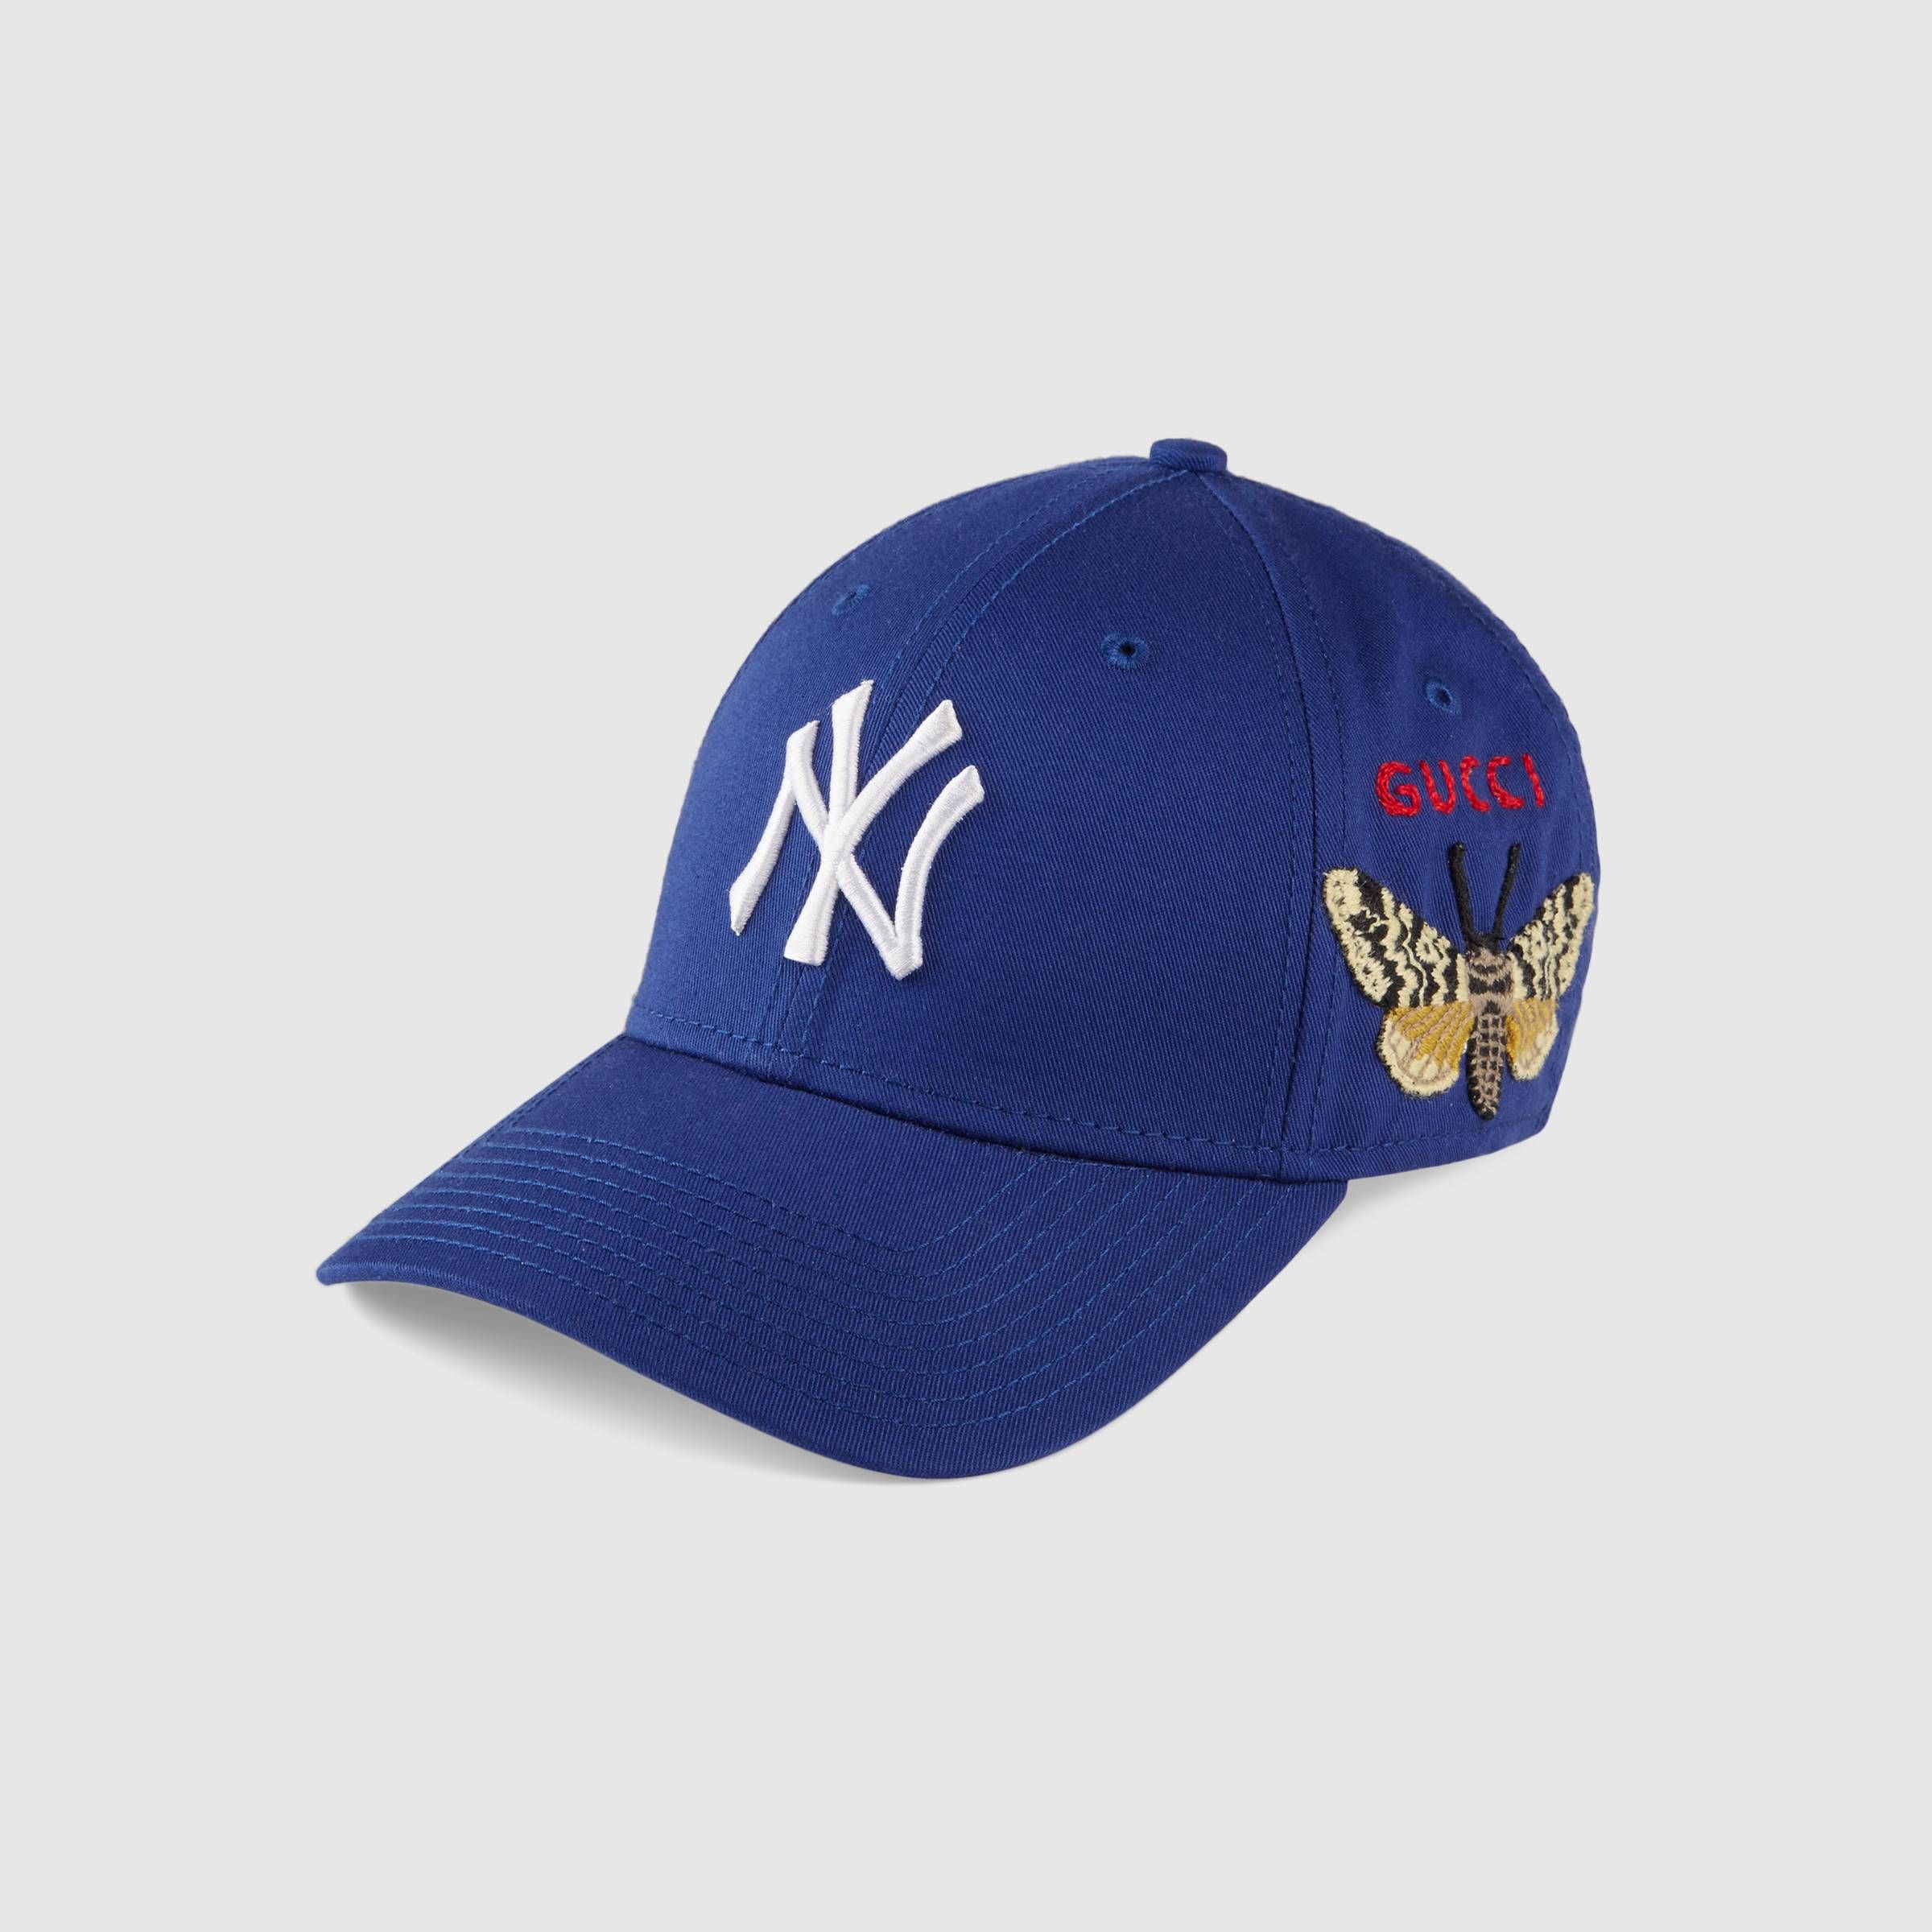 Baseball Cap With Ny Yankees Patch In Royal Blue Cotton Canvas Gucci Men S Hats Gloves Baseball Cap Womens Baseball Cap Yankees Hat